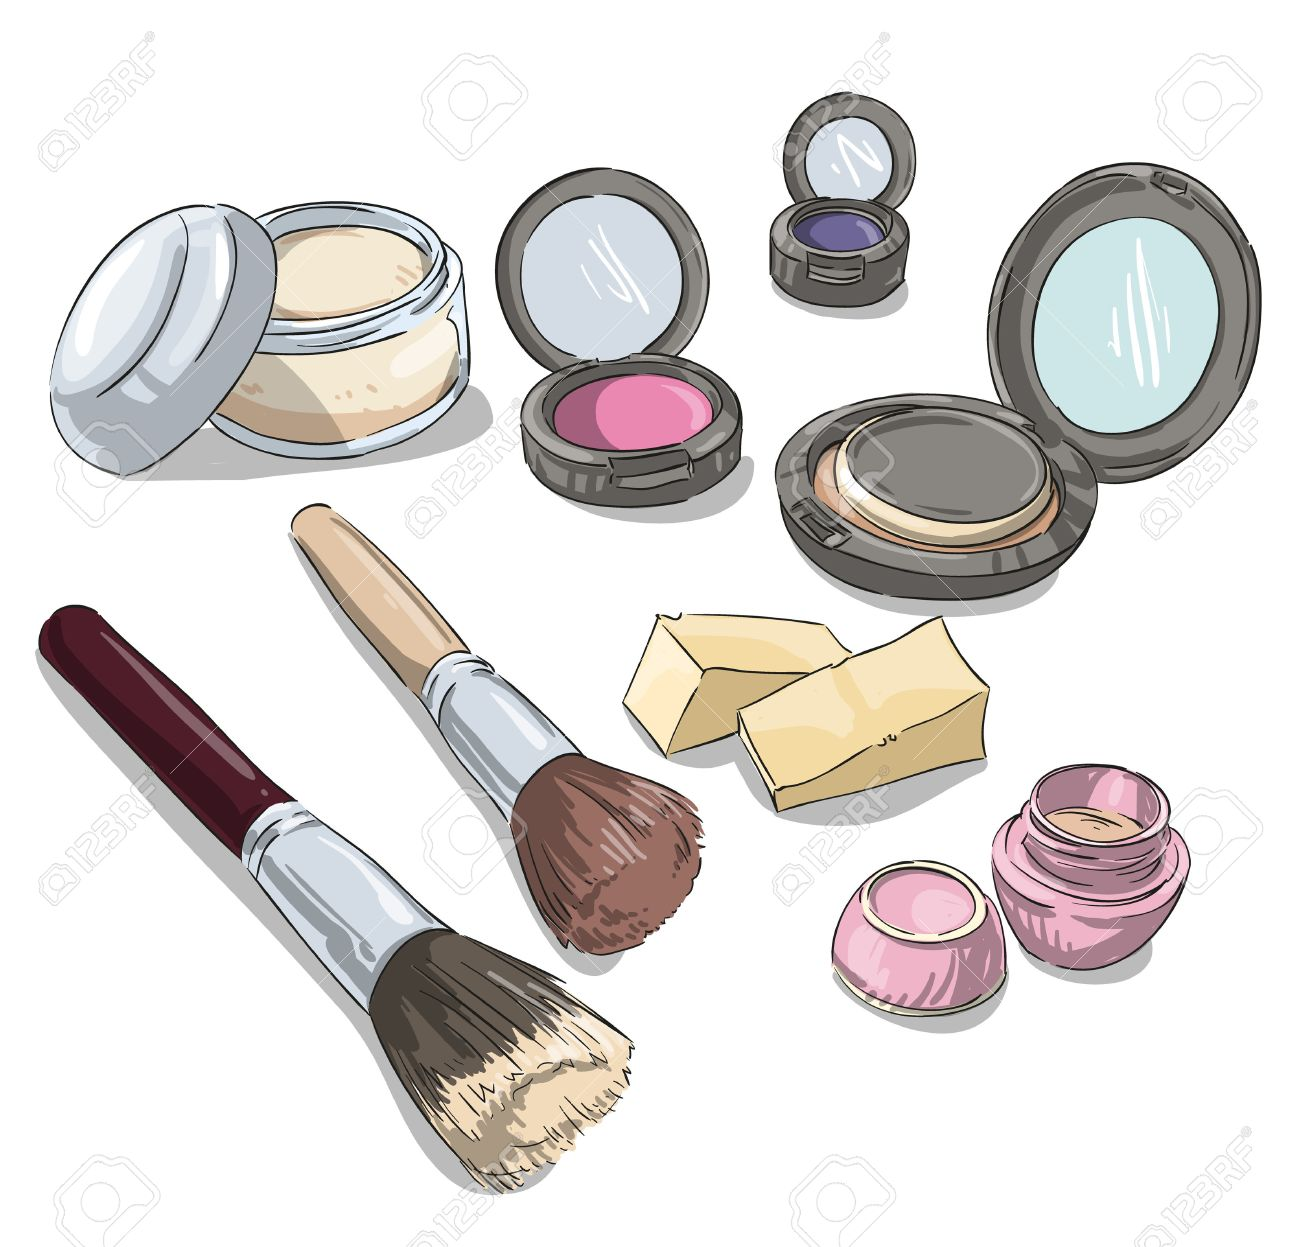 produits de maquillage dessin. Fashion illustration. Banque dimages , 33240360